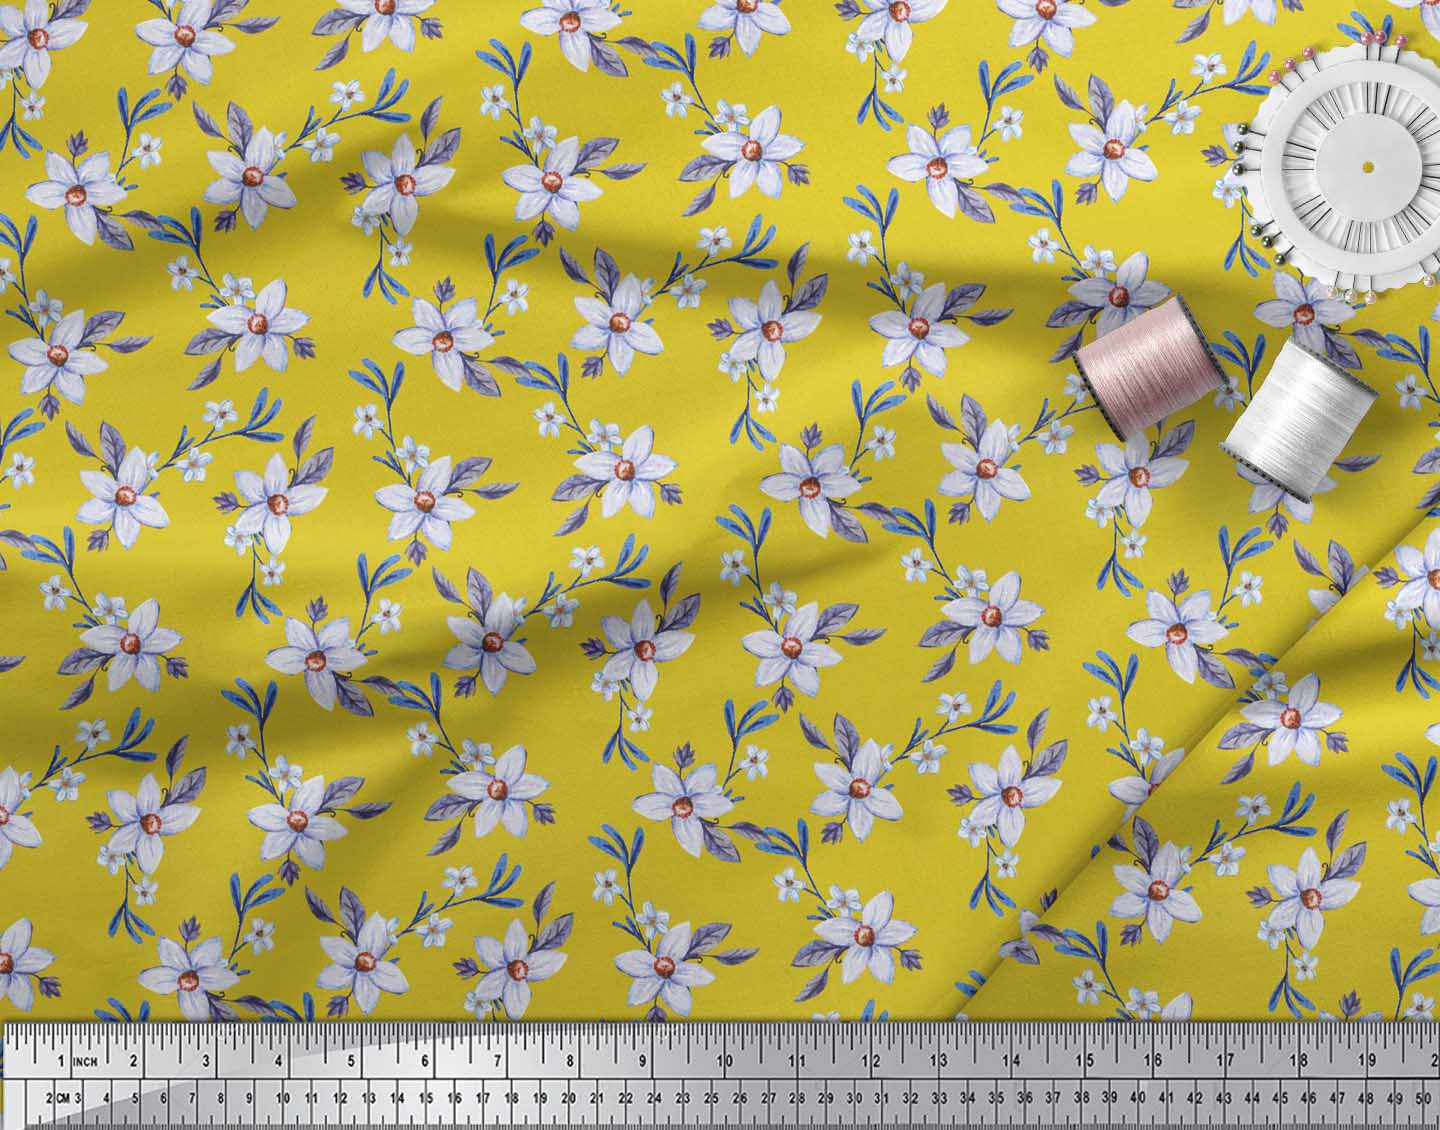 Soimoi-Yellow-Cotton-Poplin-Fabric-Leaves-amp-Periwinkle-Floral-Printed-0FK thumbnail 3